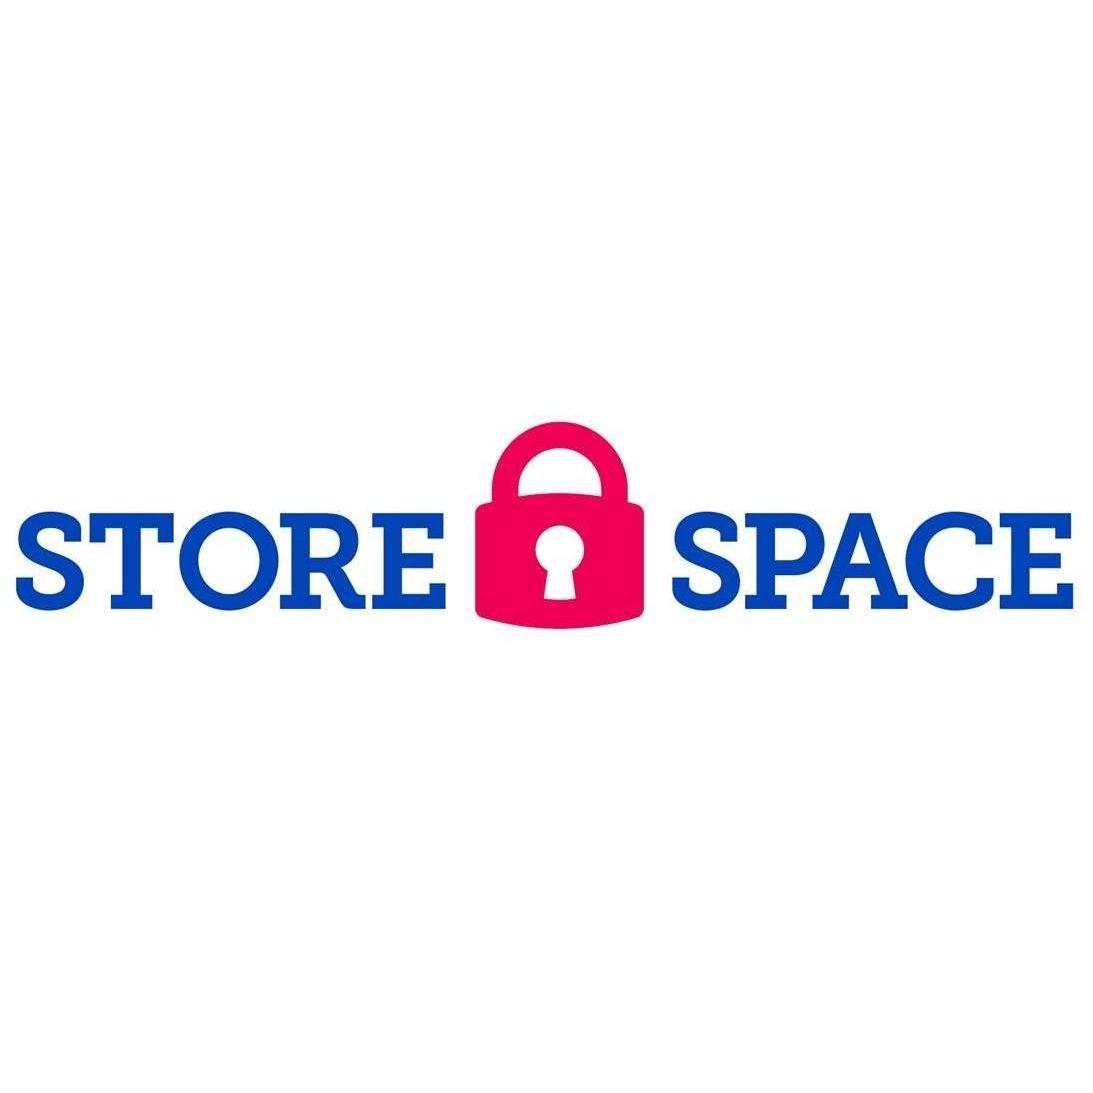 Store Space Self Storage - Houston, TX 77035 - (832)915-3422 | ShowMeLocal.com